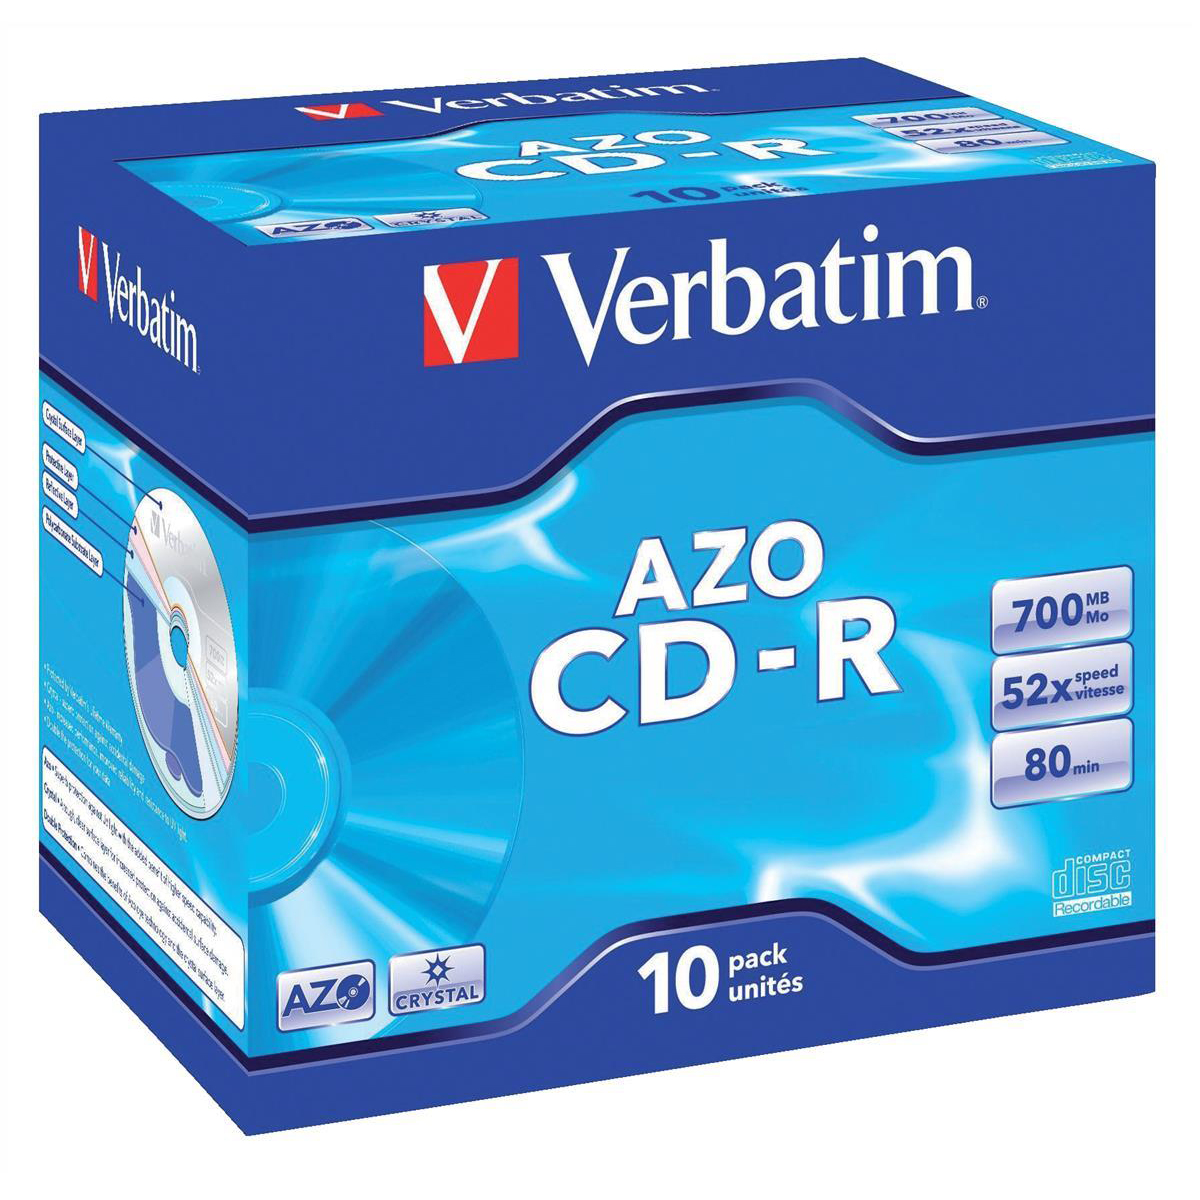 Compact disks CDs Verbatim CD-R Recordable Disk Write-once Cased 52x Speed 80 Min 700Mb Ref 43327 Pack 10